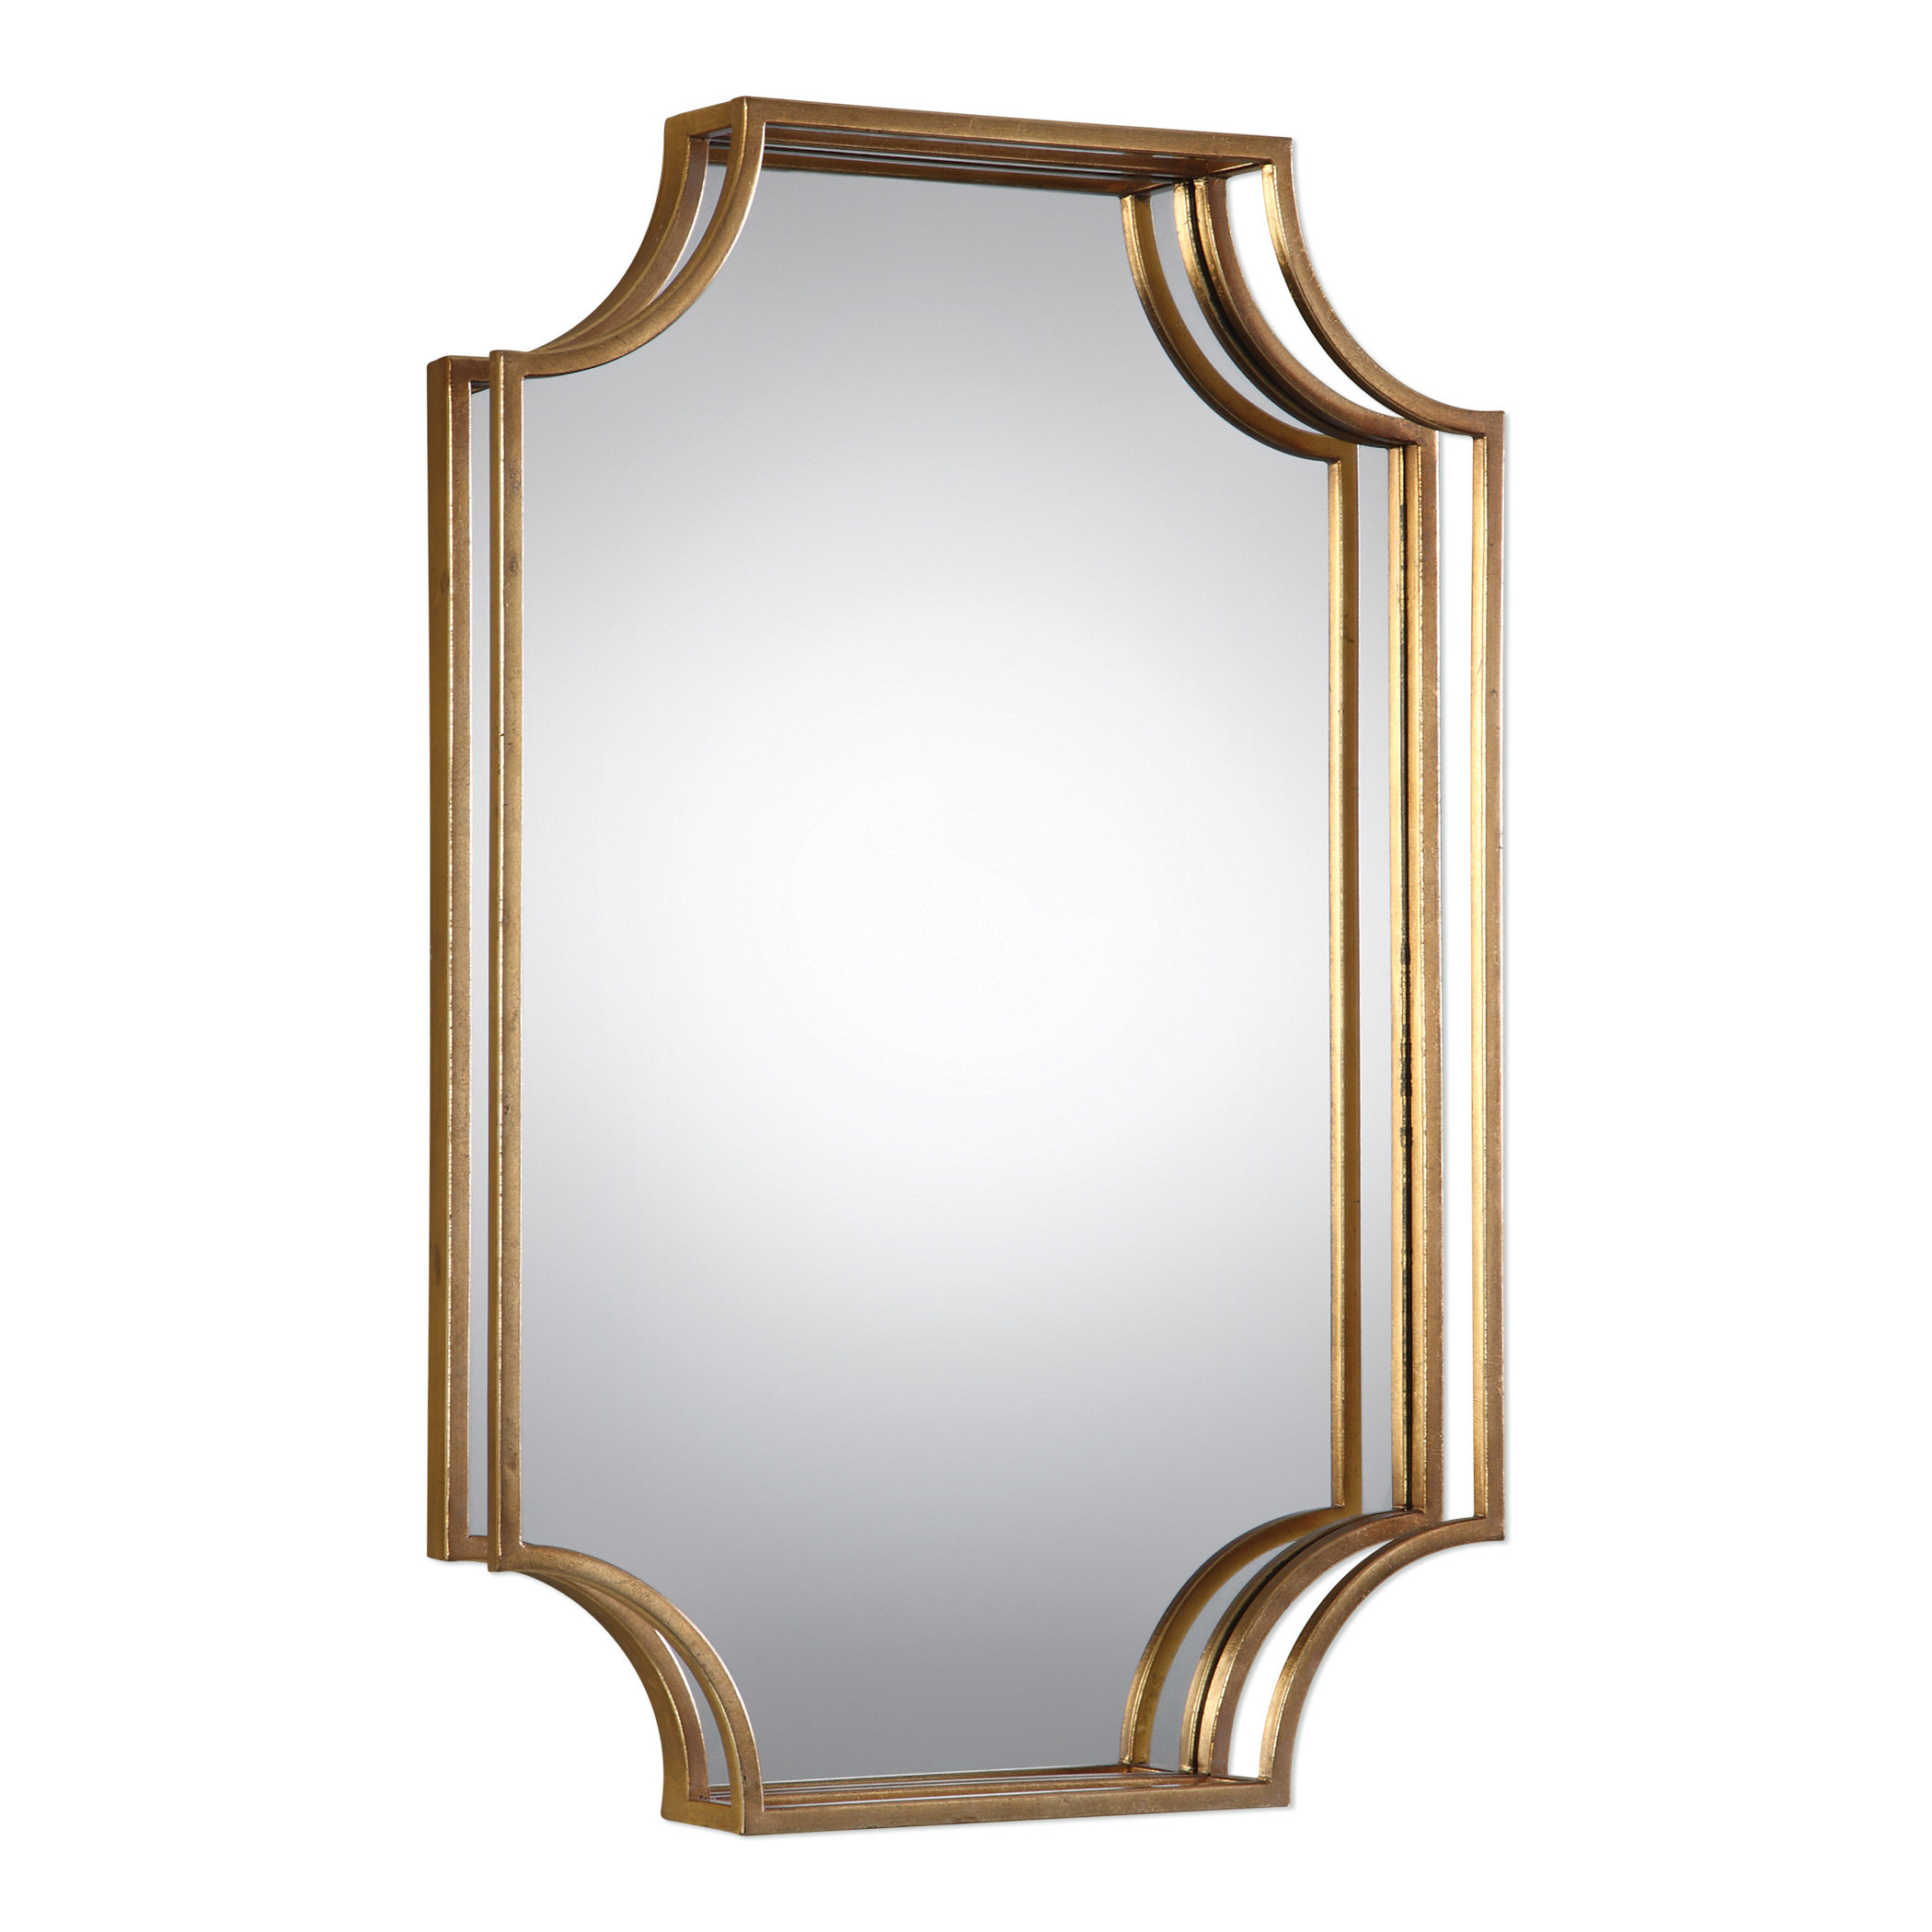 Dariel Tall Arched Scalloped Wall Mirrors In Current Vansickle Metal Accent Wall Mirror (View 4 of 20)